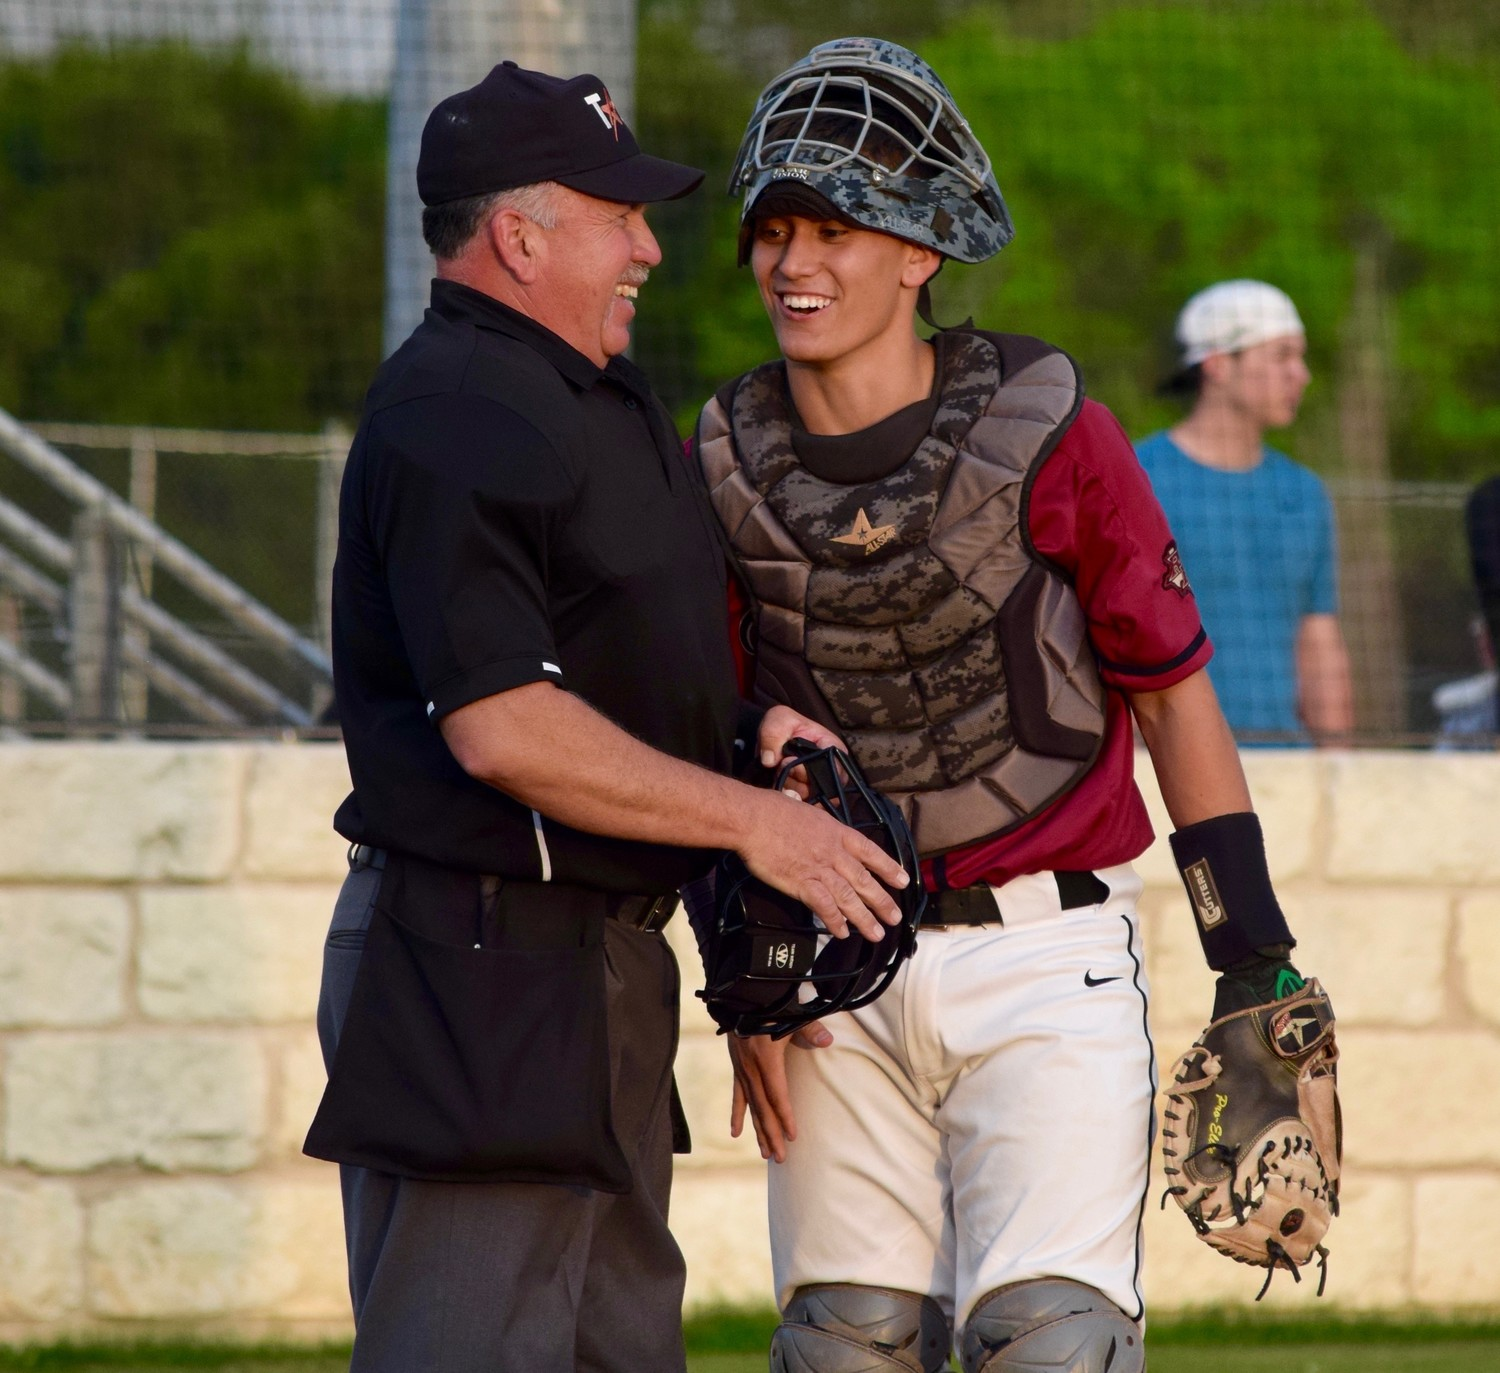 Cody Vannoy's routine includes a respectful chat with the umpire before every game. He spent the first two years of high school at Summit Christian Academy before his junior and senior years at Rouse. He'll play college baseball at UTRGV.